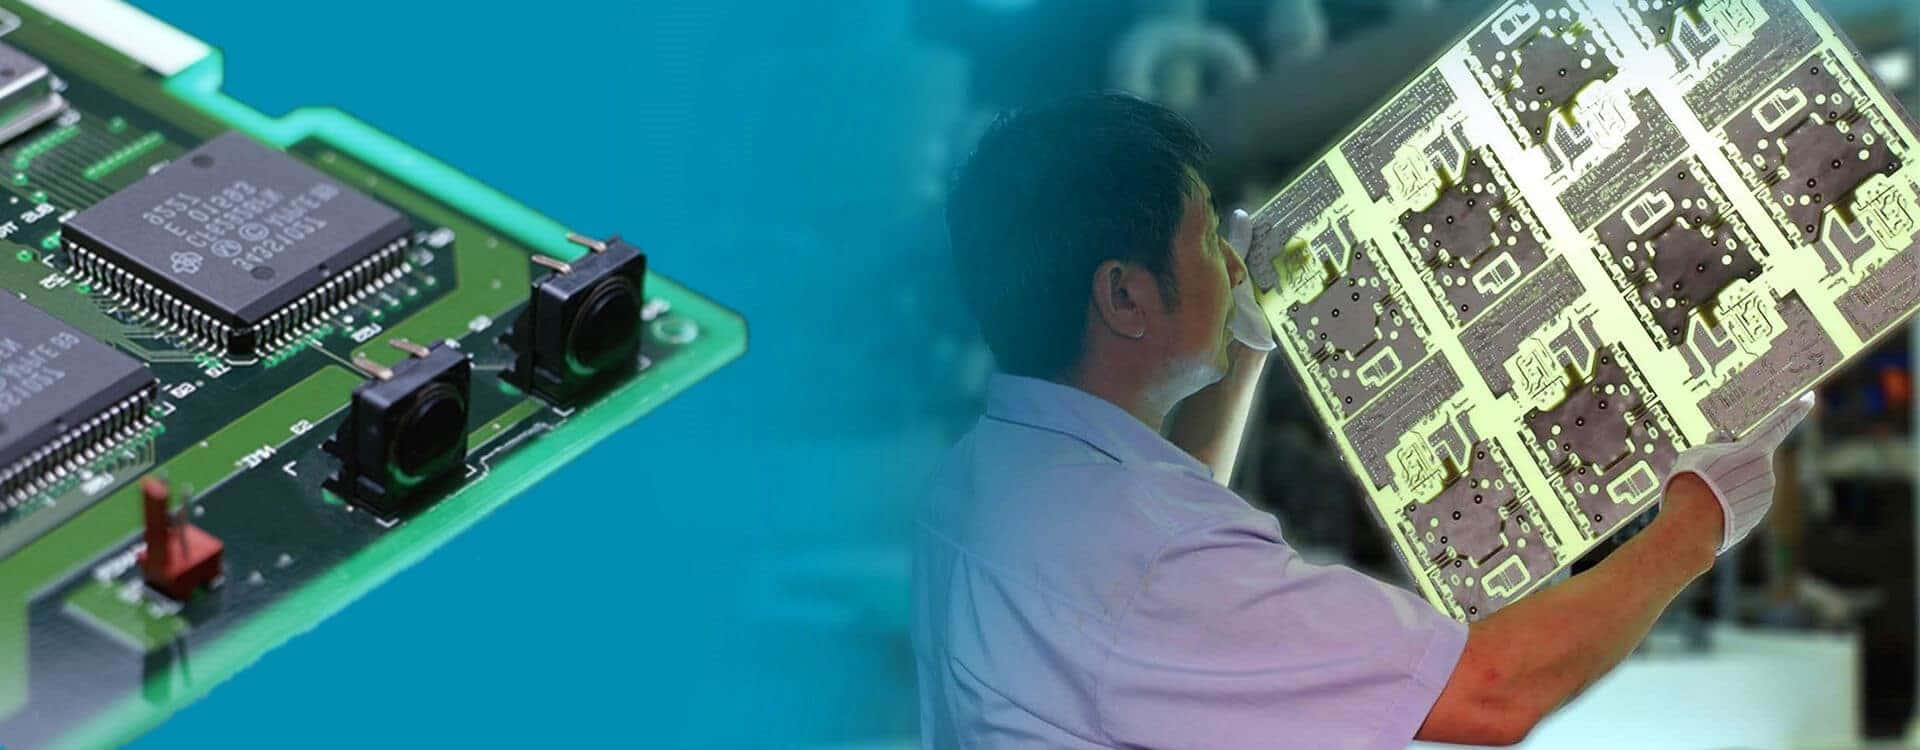 Printed Circuit Board Manufacturer Pcb Assembly Supplier More Oem Electronic Process Supply Pcba Skip To Content